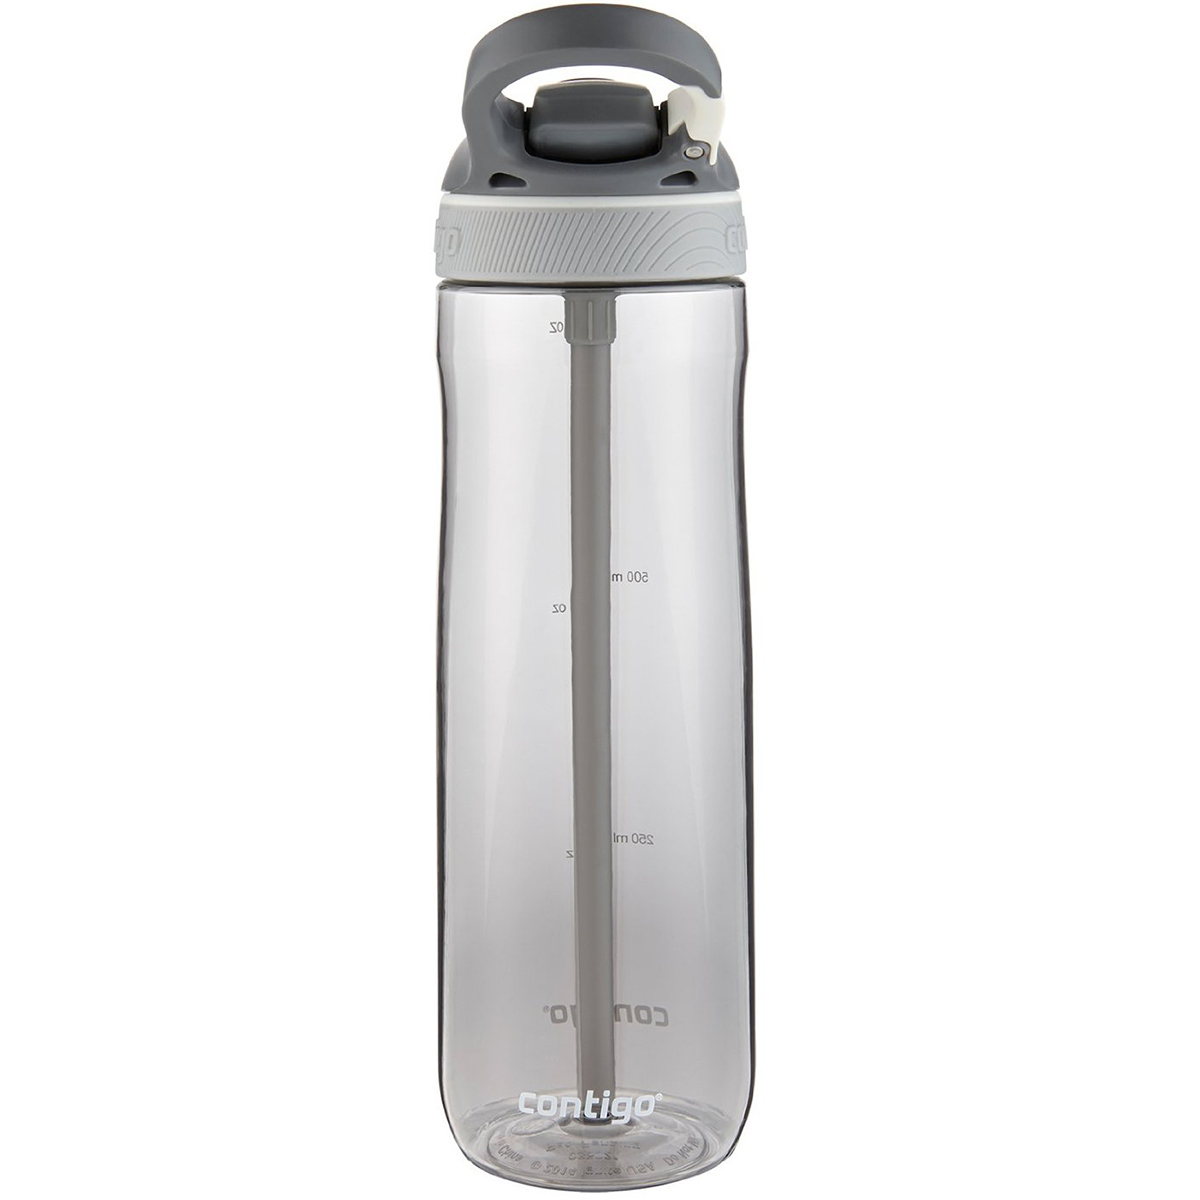 Contigo-24-oz-Ashland-Autospout-Water-Bottle miniature 26